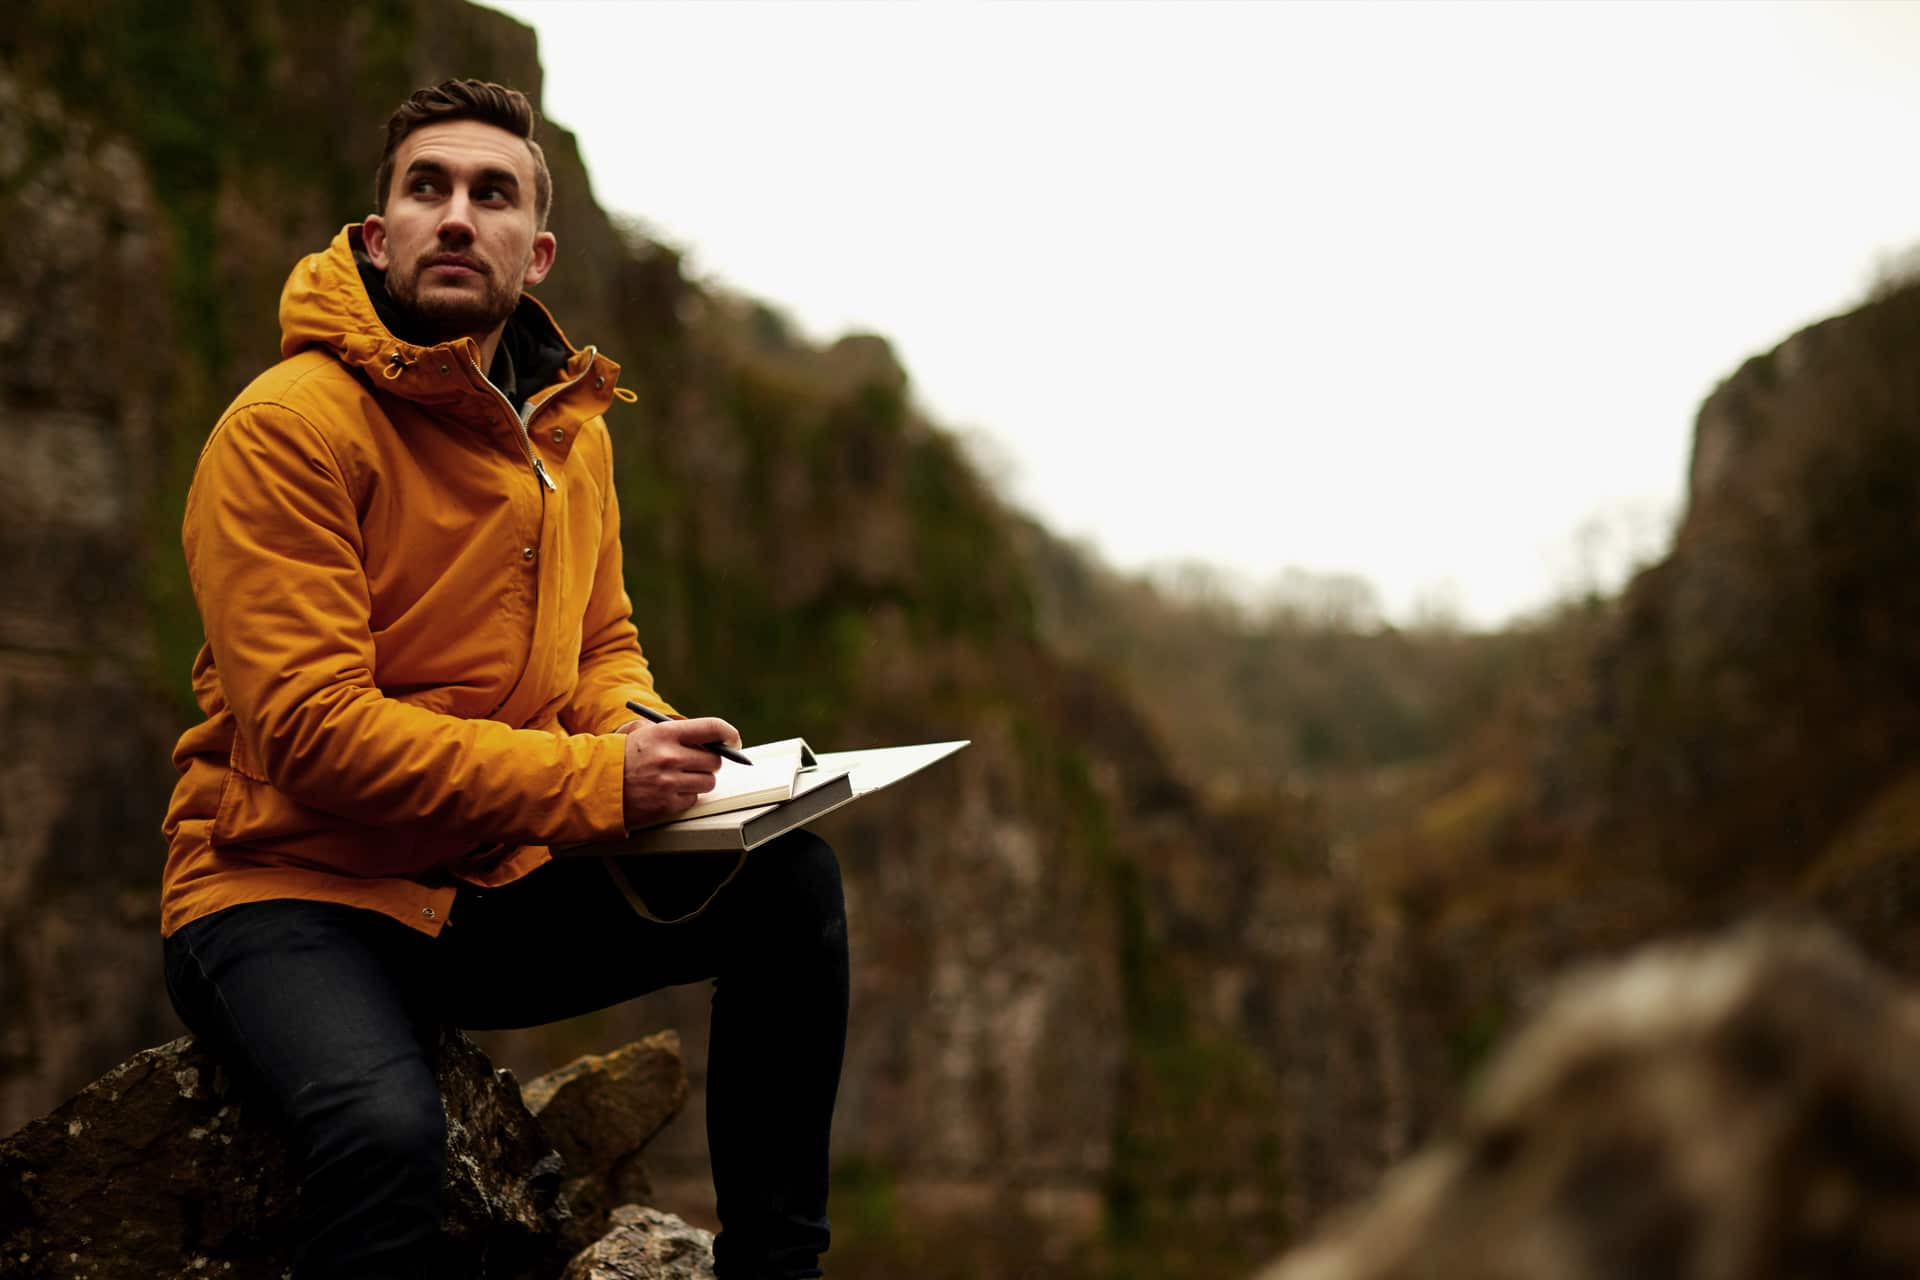 Could Keeping A Journal Improve Men's Mental Health?